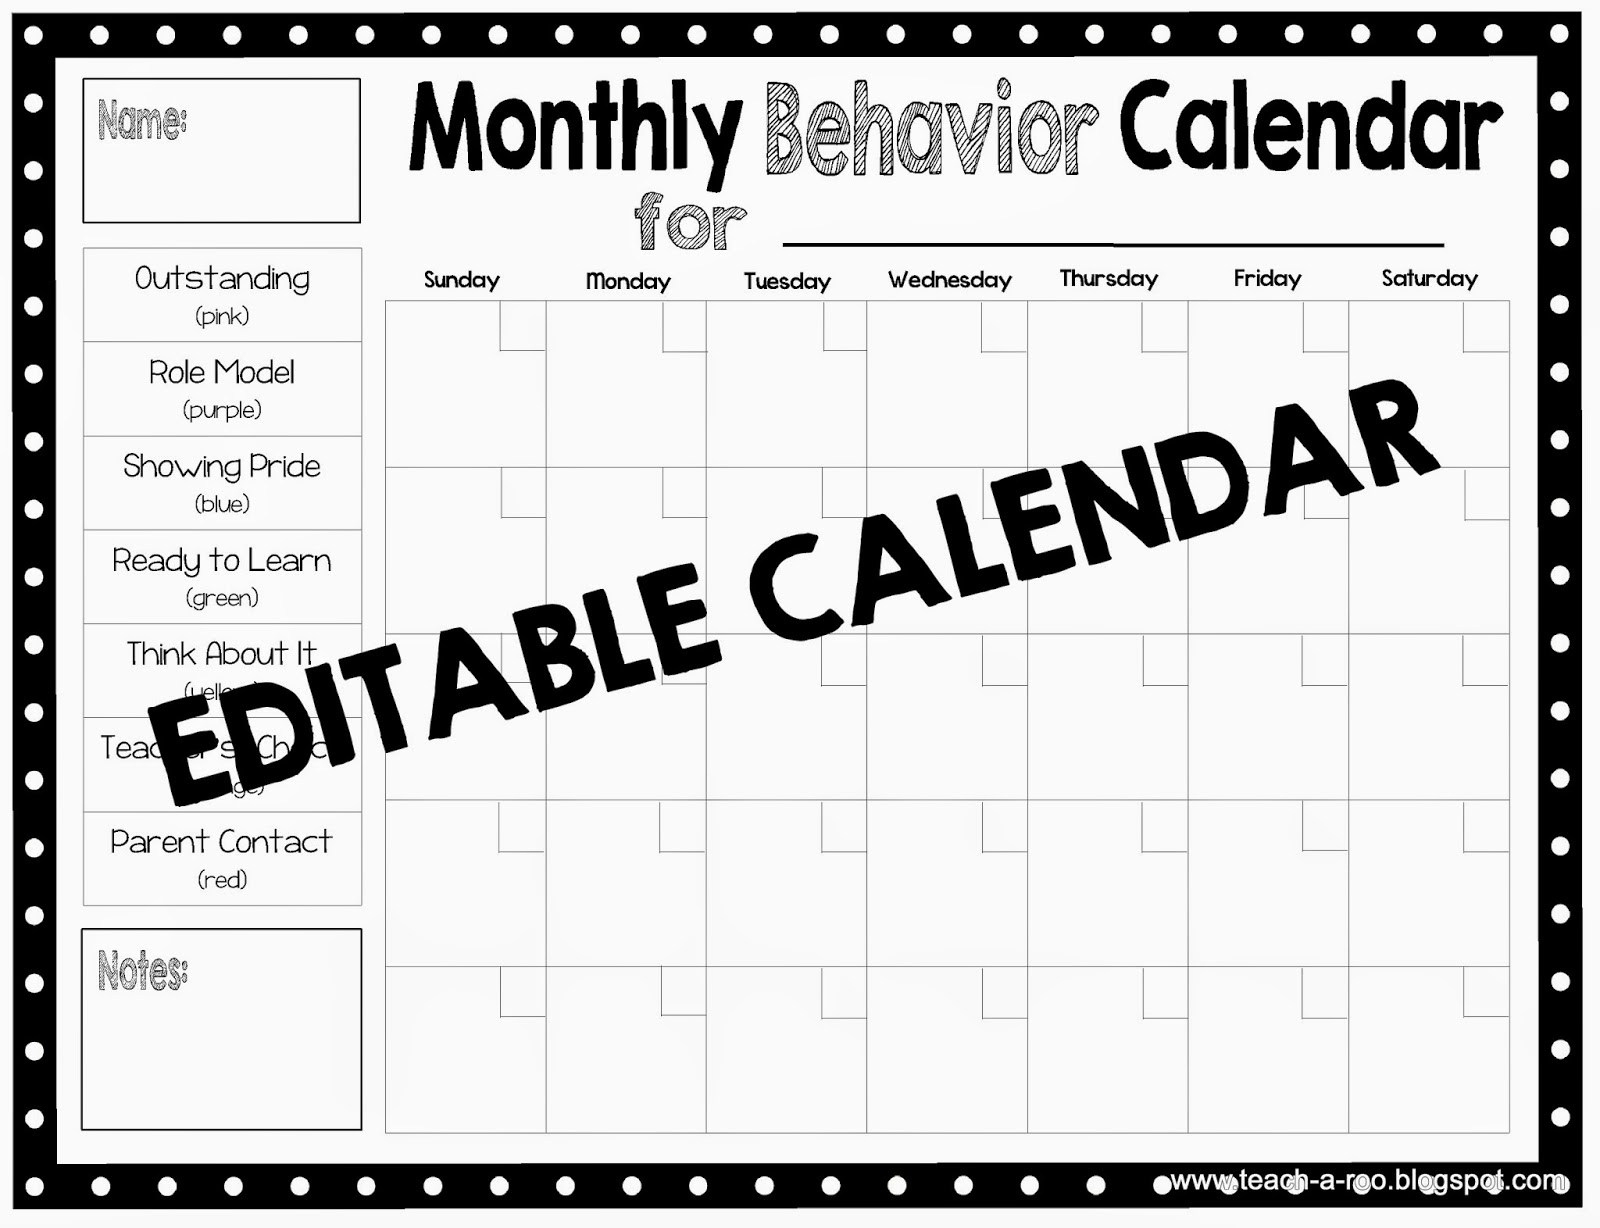 Monthly Calendar Behavior Chart • Printable Blank Calendar